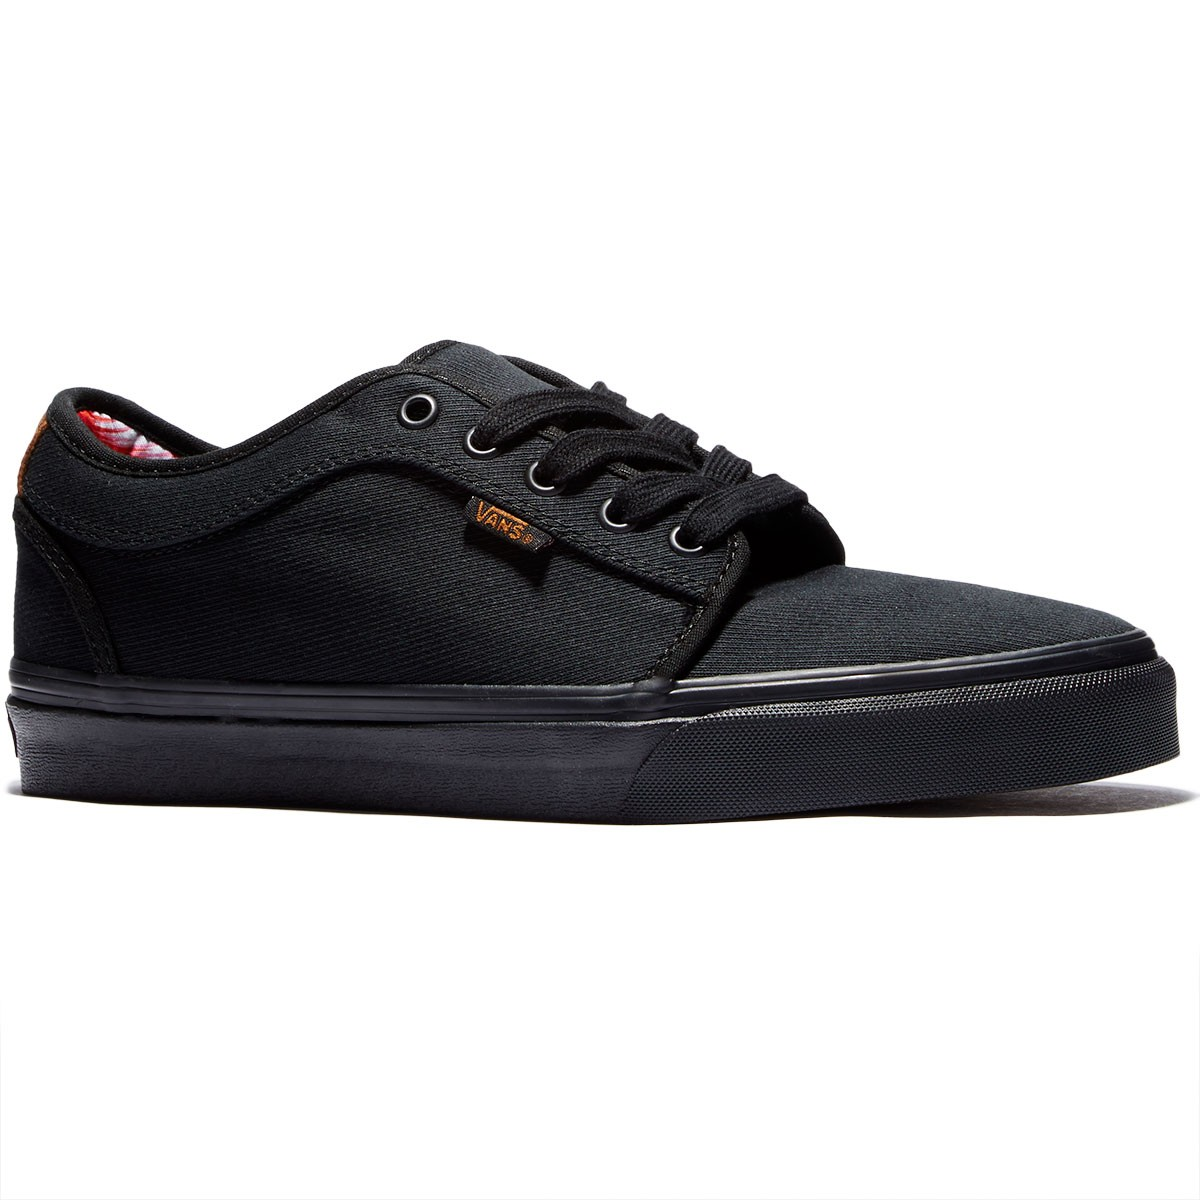 Vans Chukka Low Shoes - Aloha/Black/Twill - 8.0